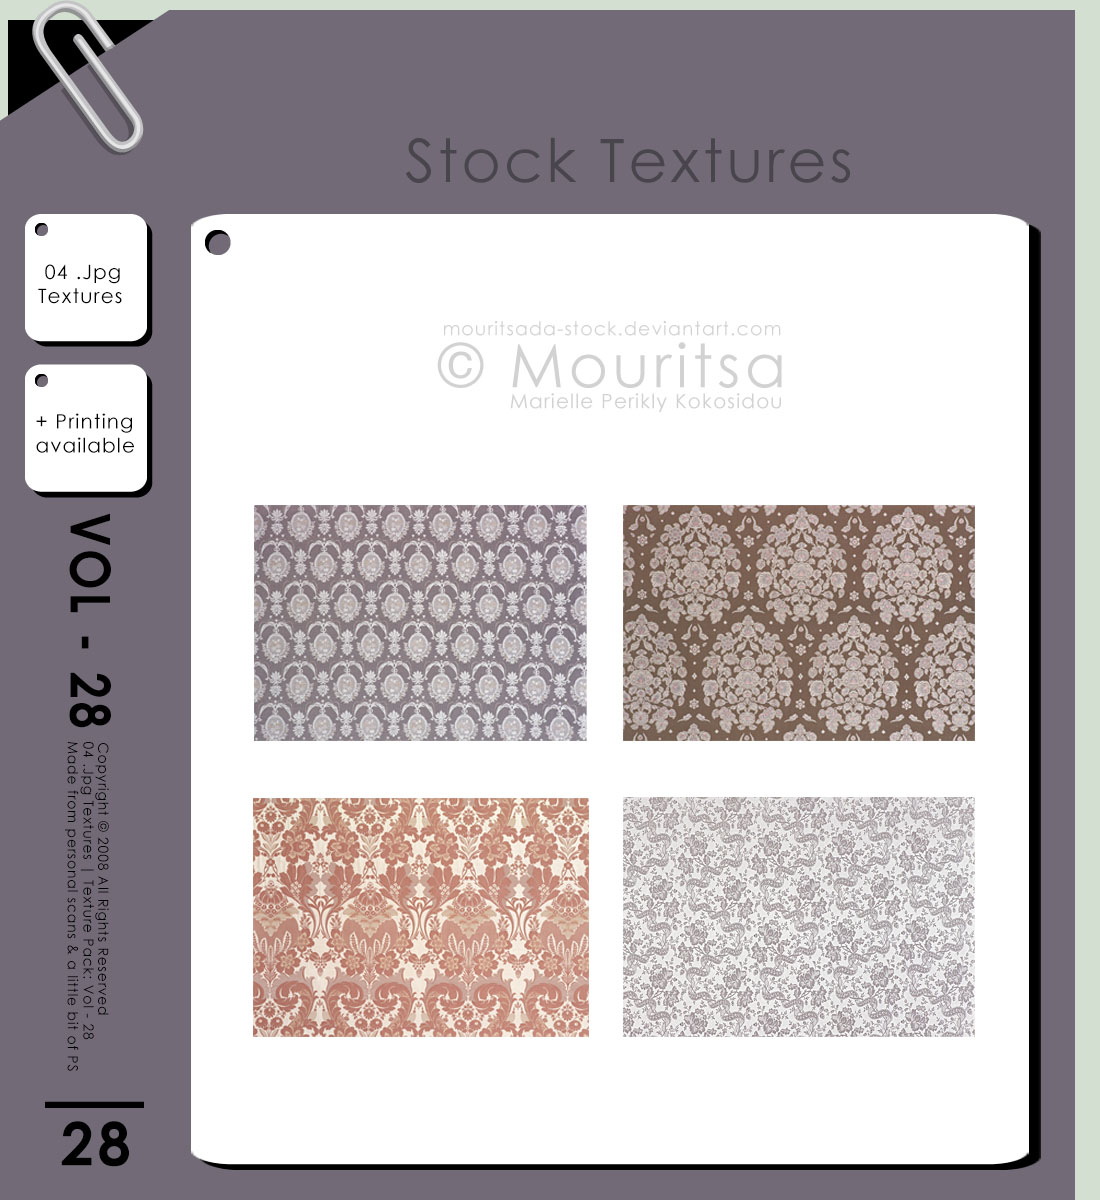 Texture - Vol 28 by MouritsaDA-Stock